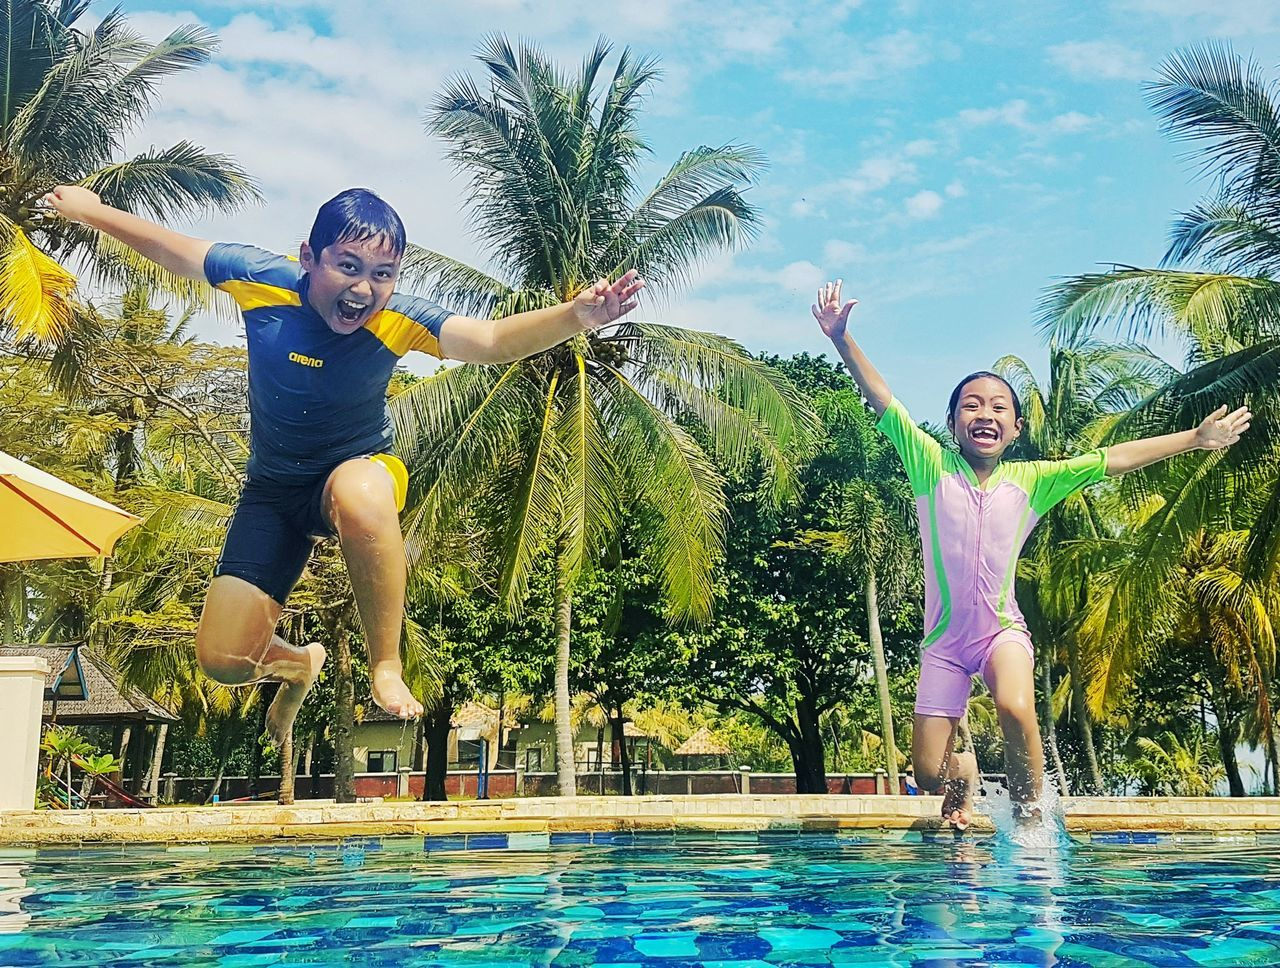 Splash! Boys Child Fun Children Only Childhood People Leisure Activity Jumping Water Swimming Pool Full Length Happiness Motion Elementary Age Playing Males  Outdoors Smiling Day Two People Kids Kids At Play